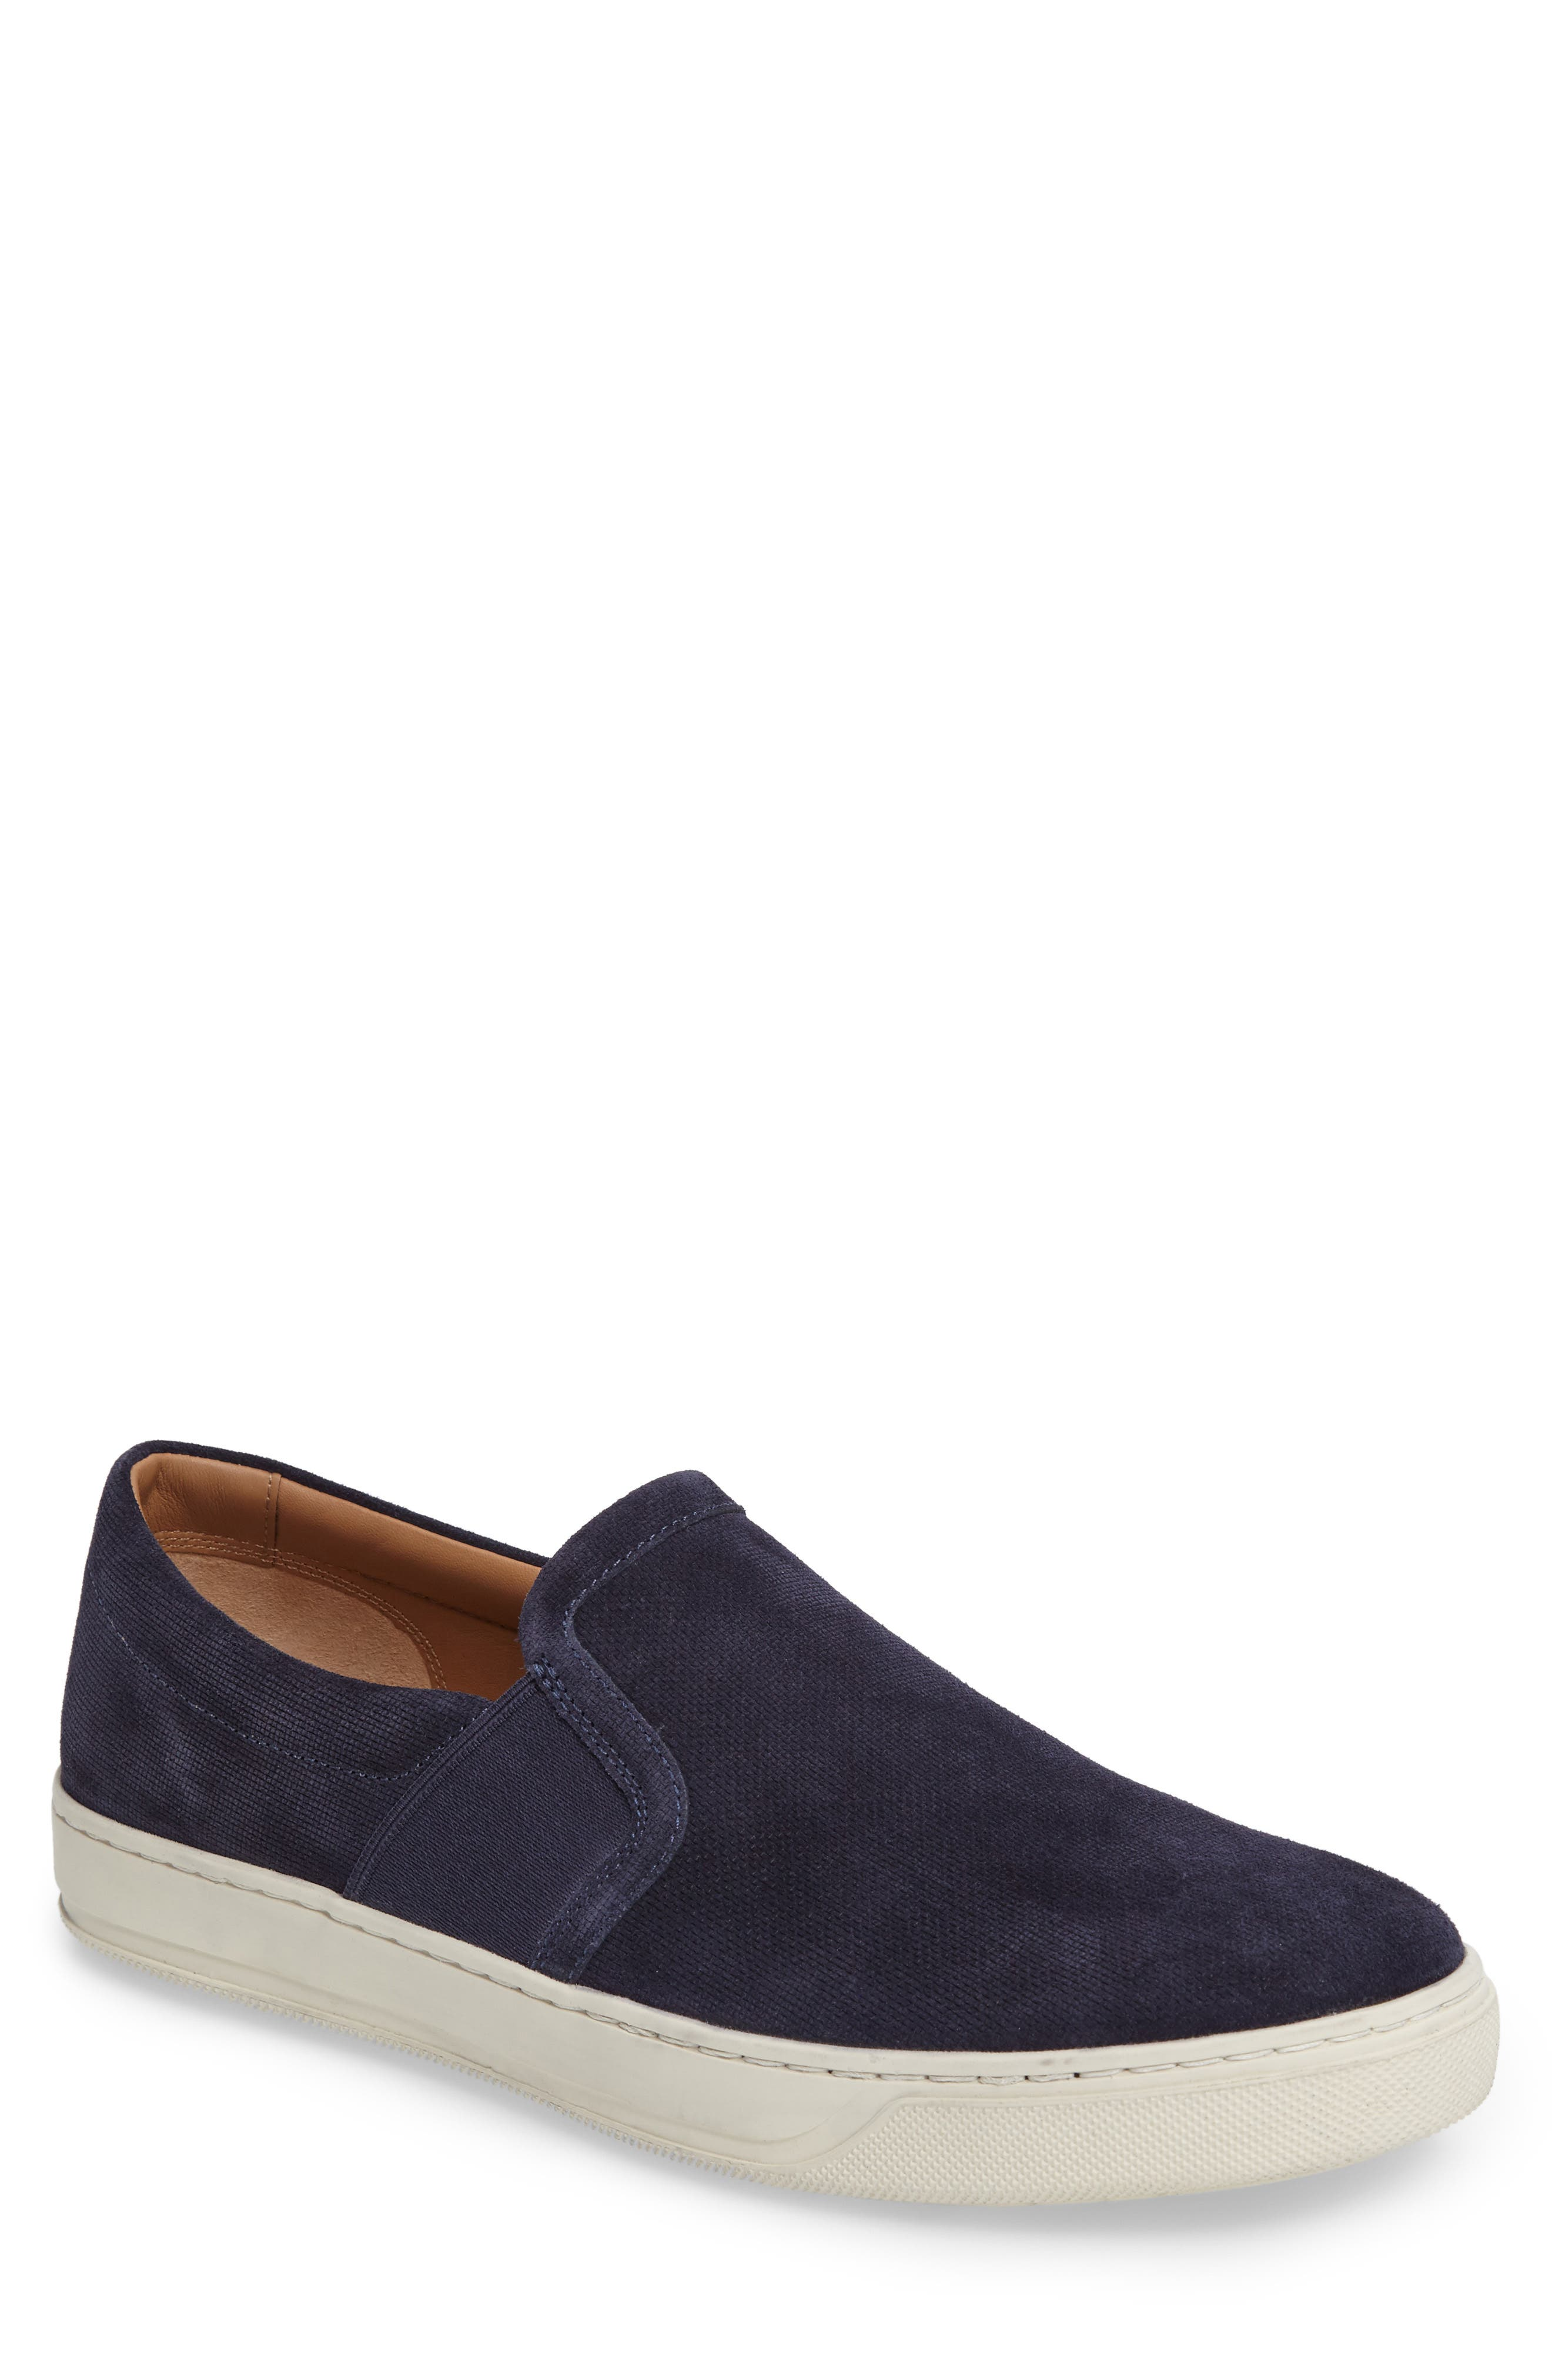 Adler Slip-On,                         Main,                         color, Coastal Suede